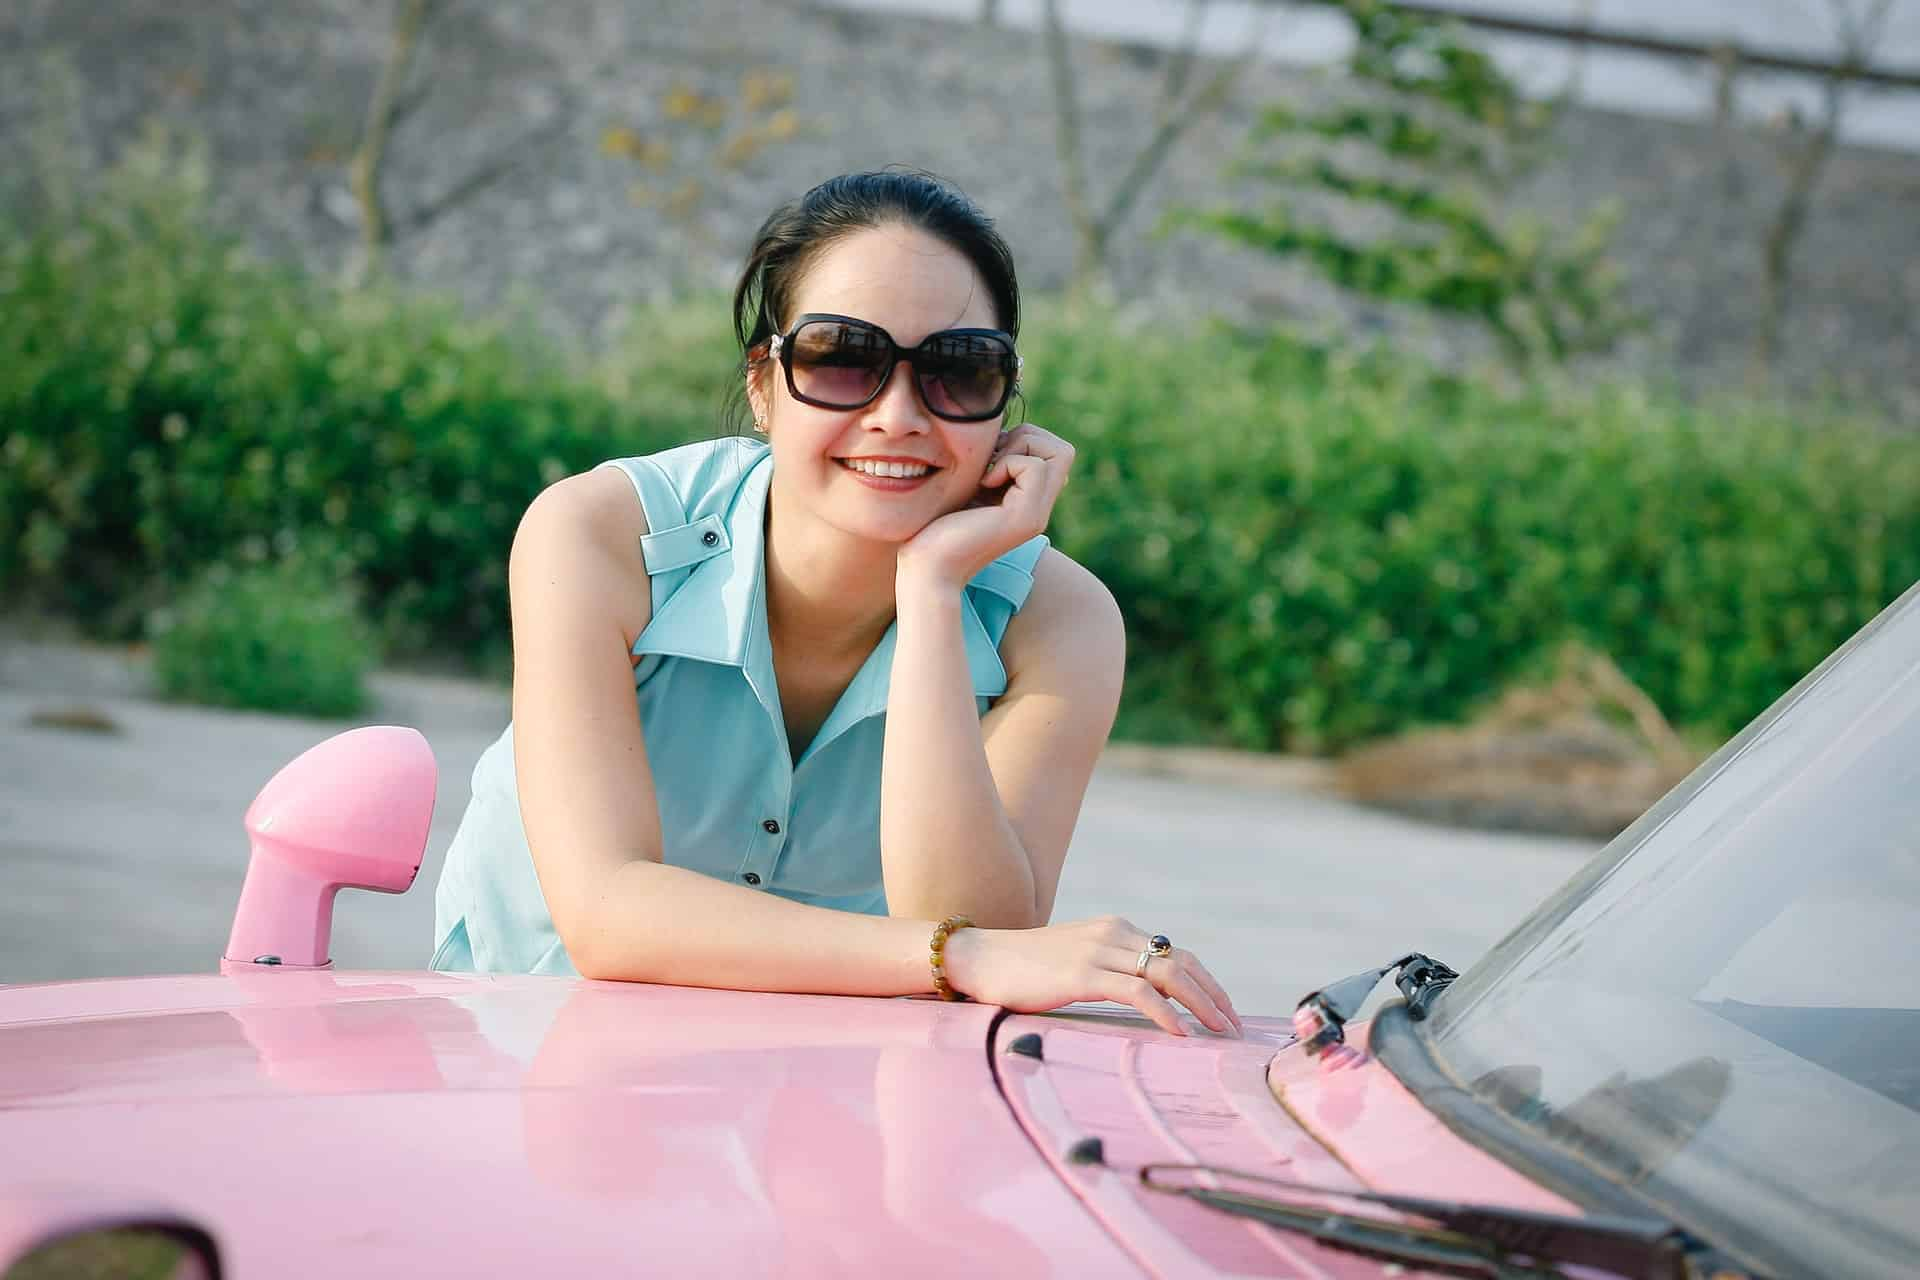 Sell your car - What SA women have to say about Weelee